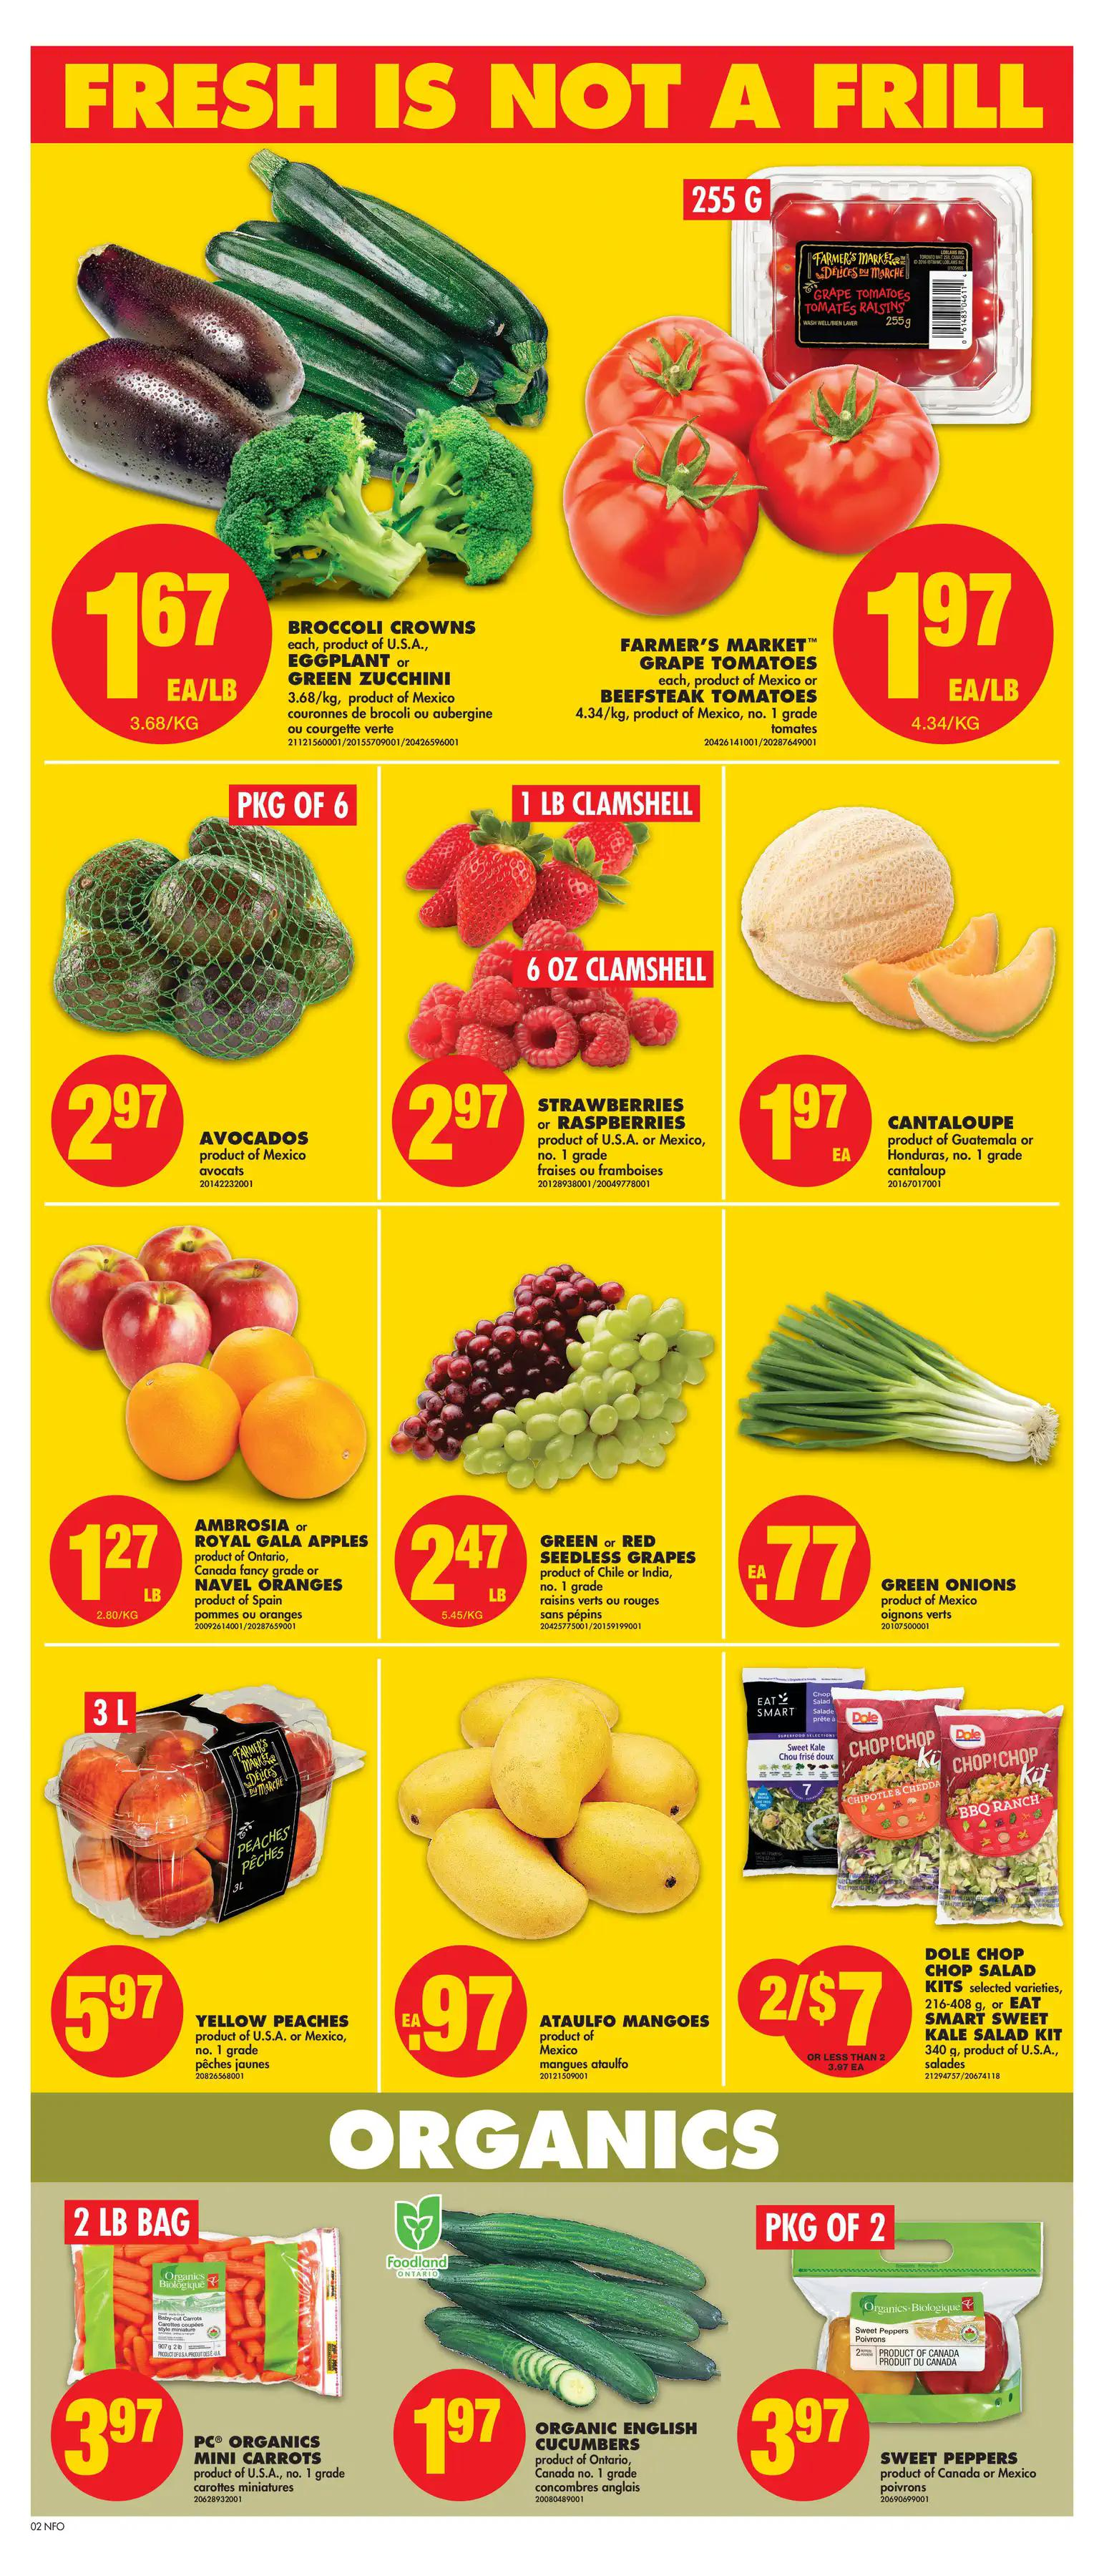 No Frills - Weekly Flyer Specials - Page 3